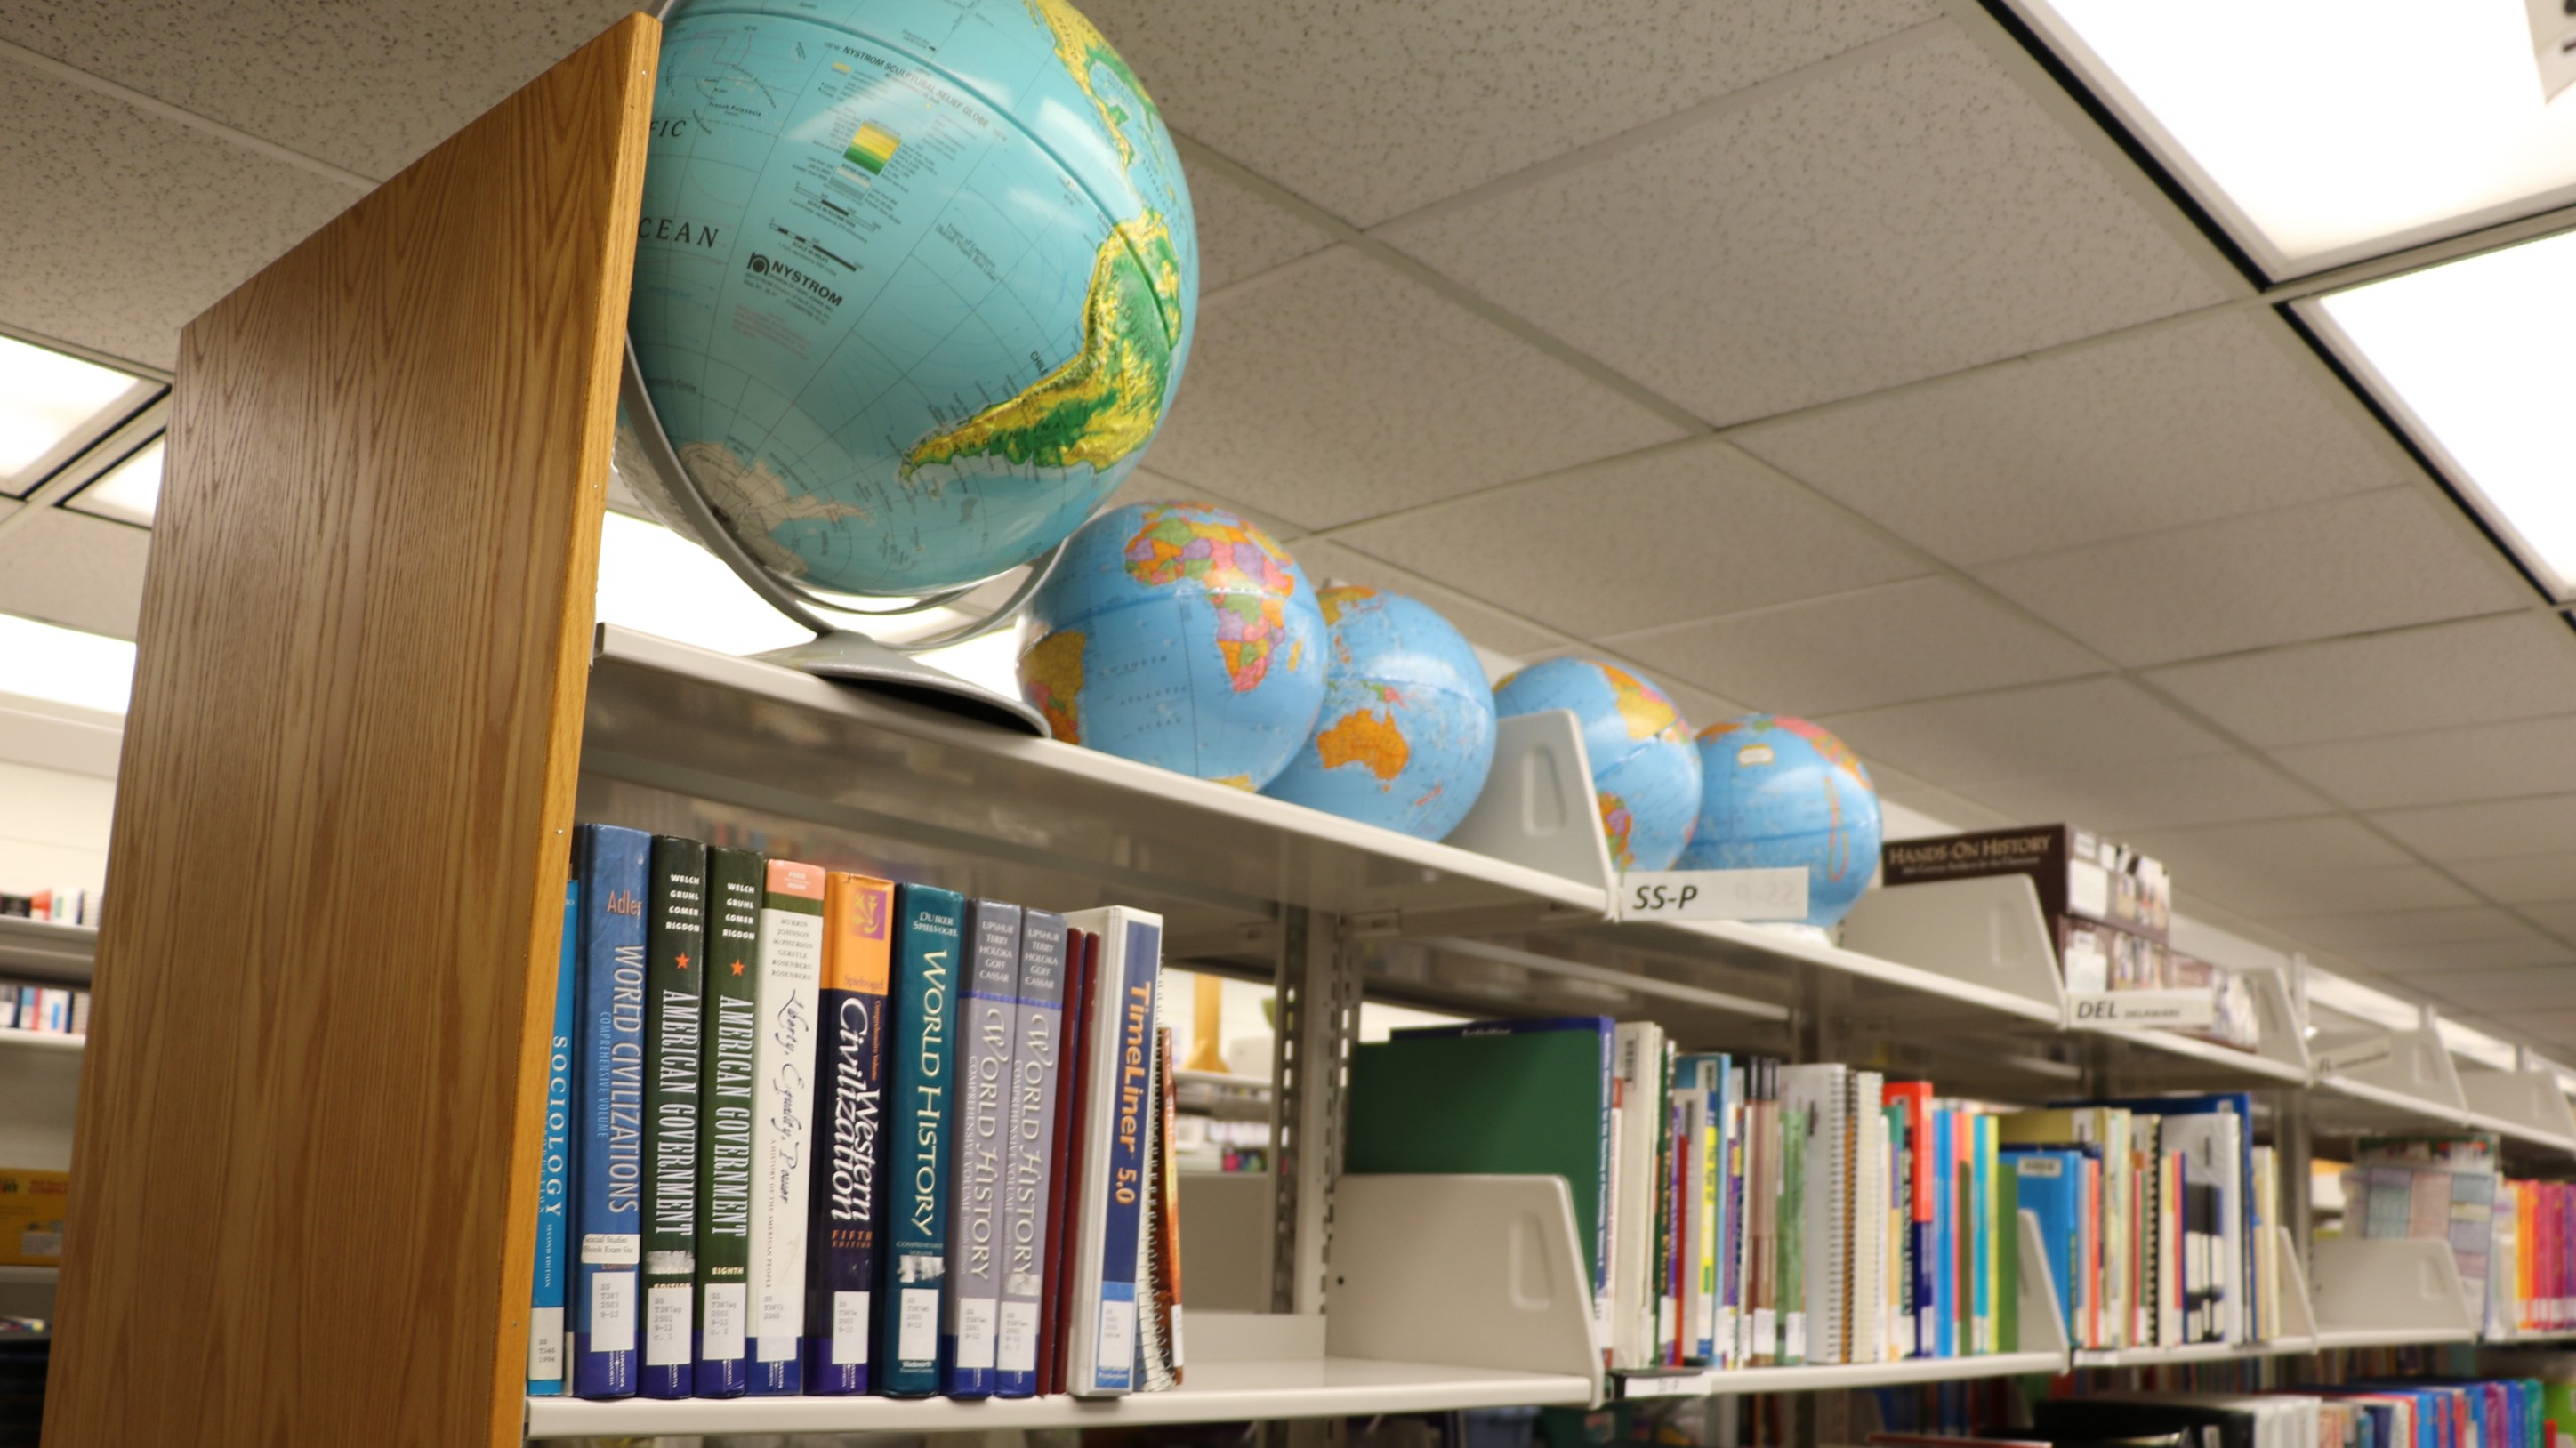 This image shows a row of resources at the Educational Resource Center, which include globes and World History reference books.